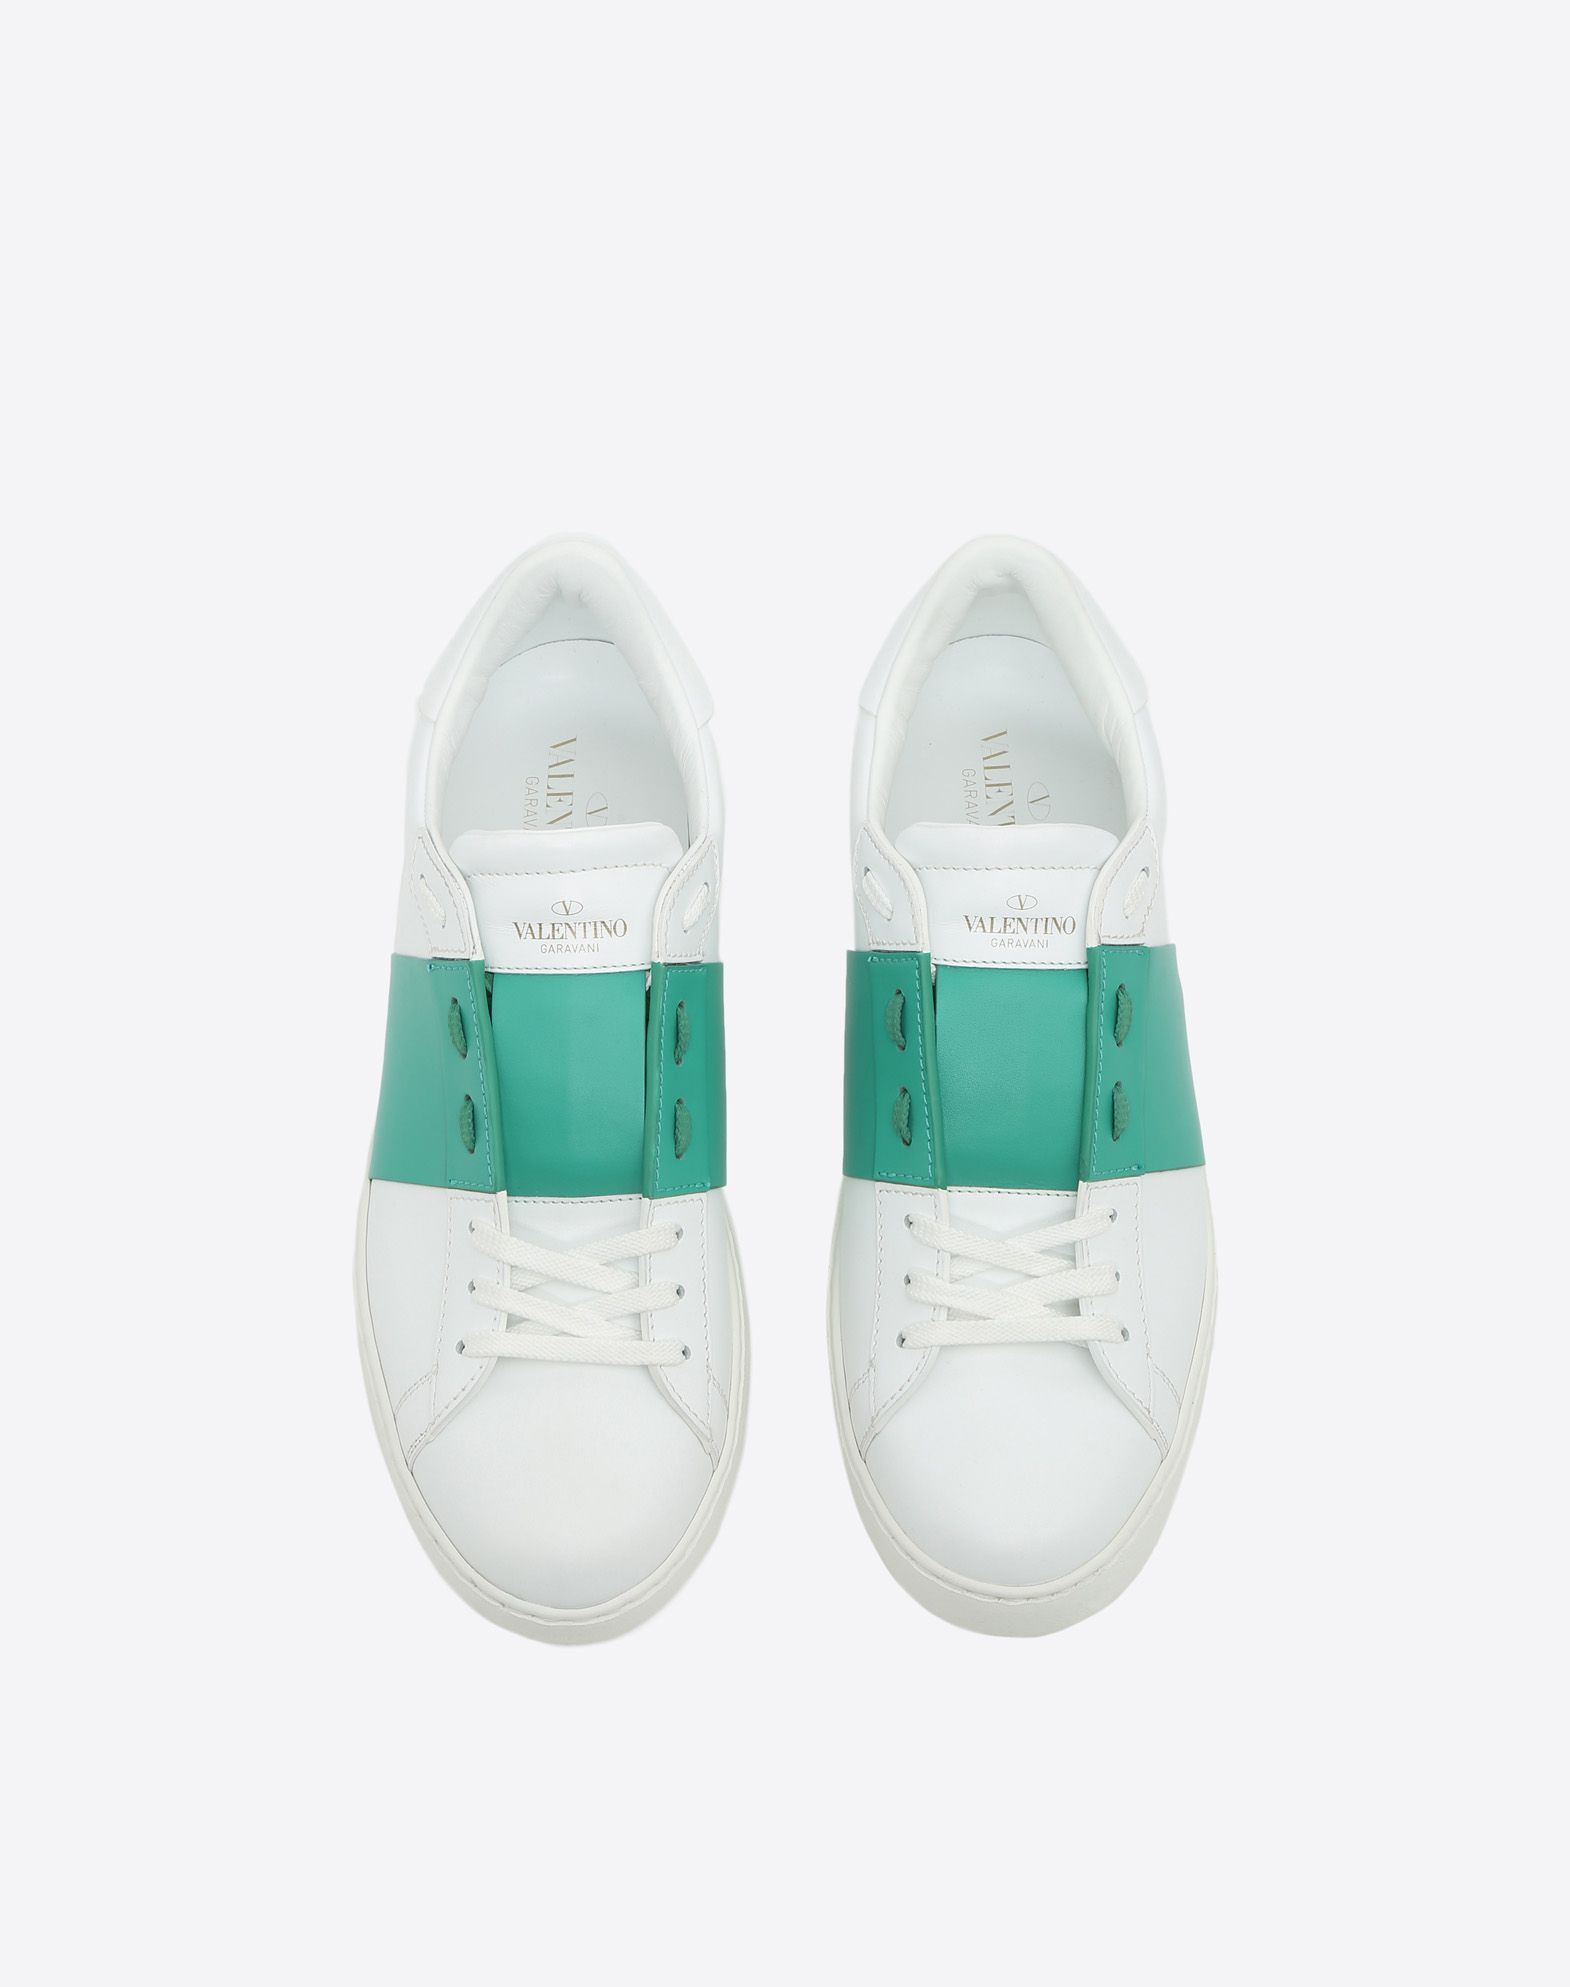 VALENTINO GARAVANI UOMO Open 低帮运动鞋 LOW-TOP SNEAKERS U e